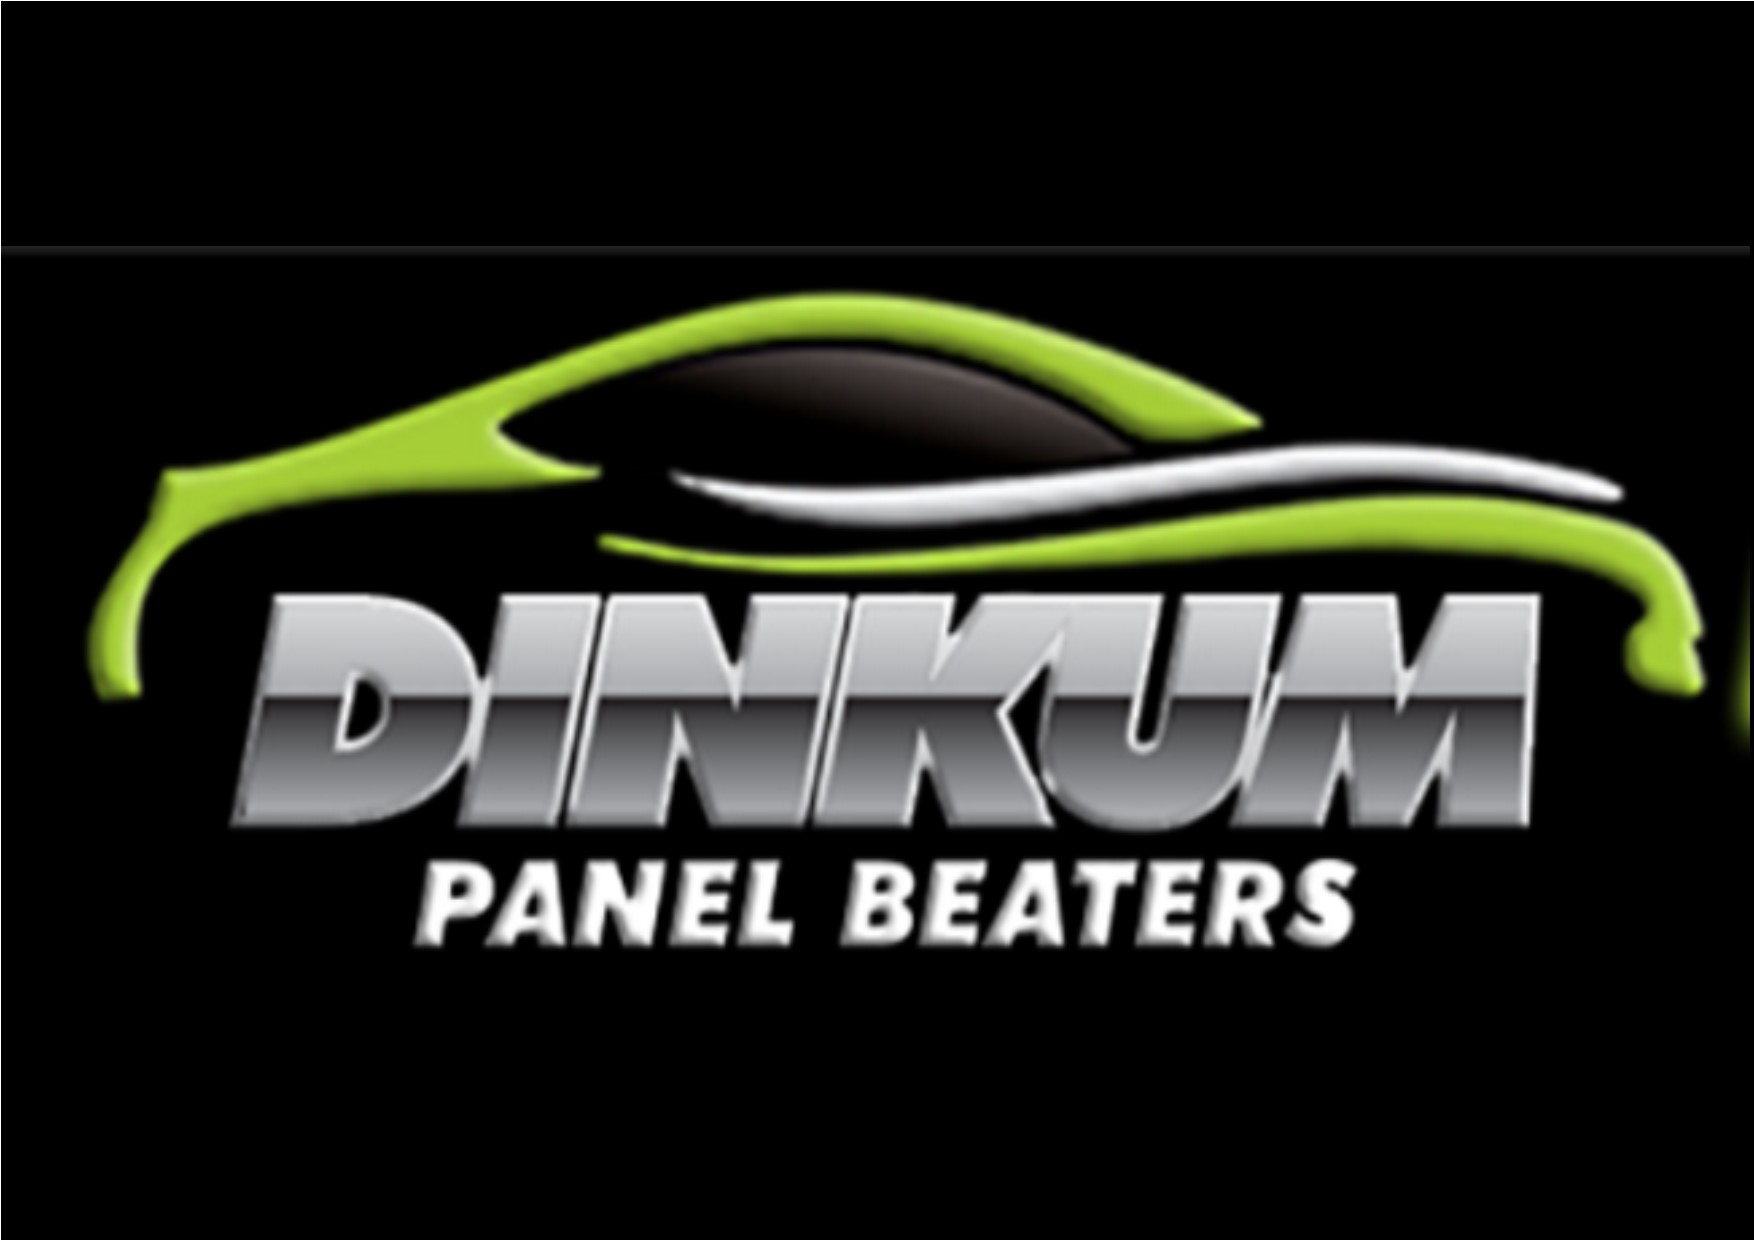 Dinkum Panel Beaters - Panel Beater Directory